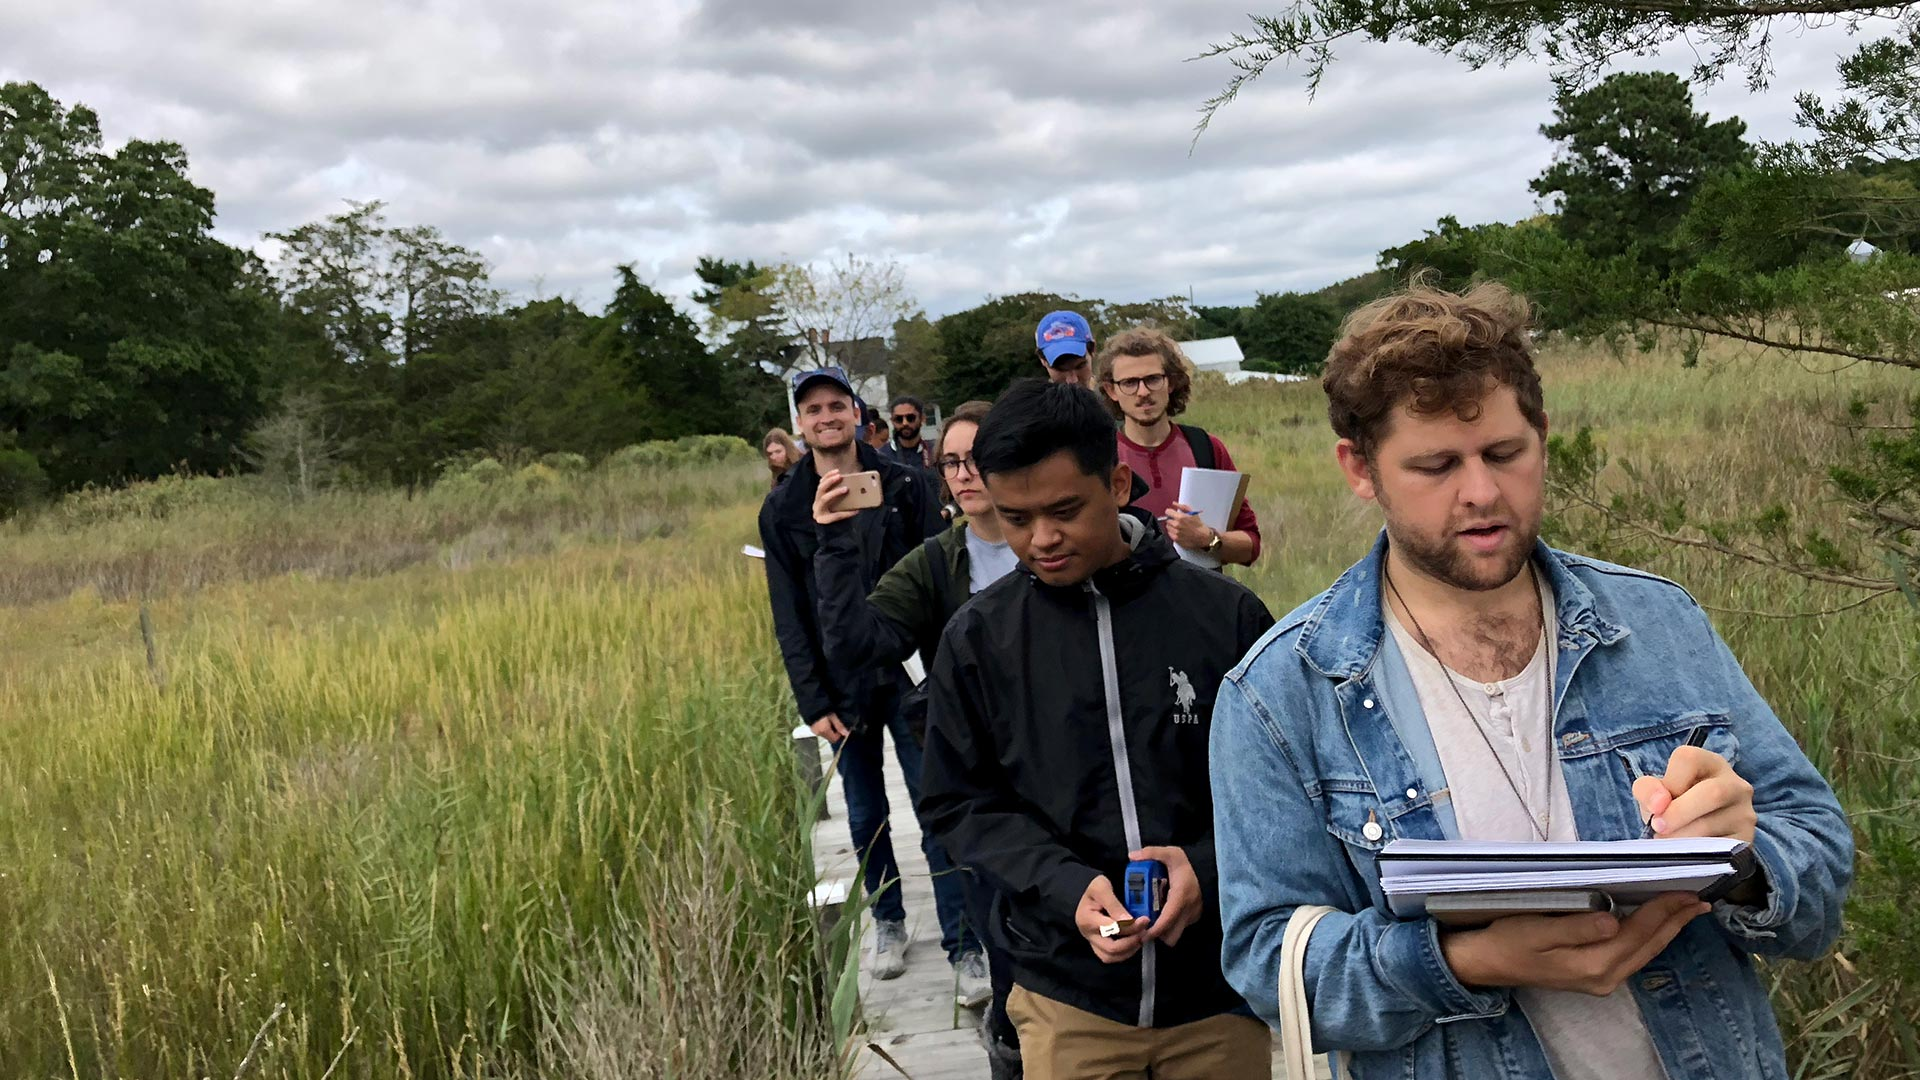 Students in a graduate design studio at the School of Architecture, Planning and Preservation are working with the Maryland Department of Natural Resources to develop proposals for a new research station on the Eastern Shore. (Photo by Zebi Brown)